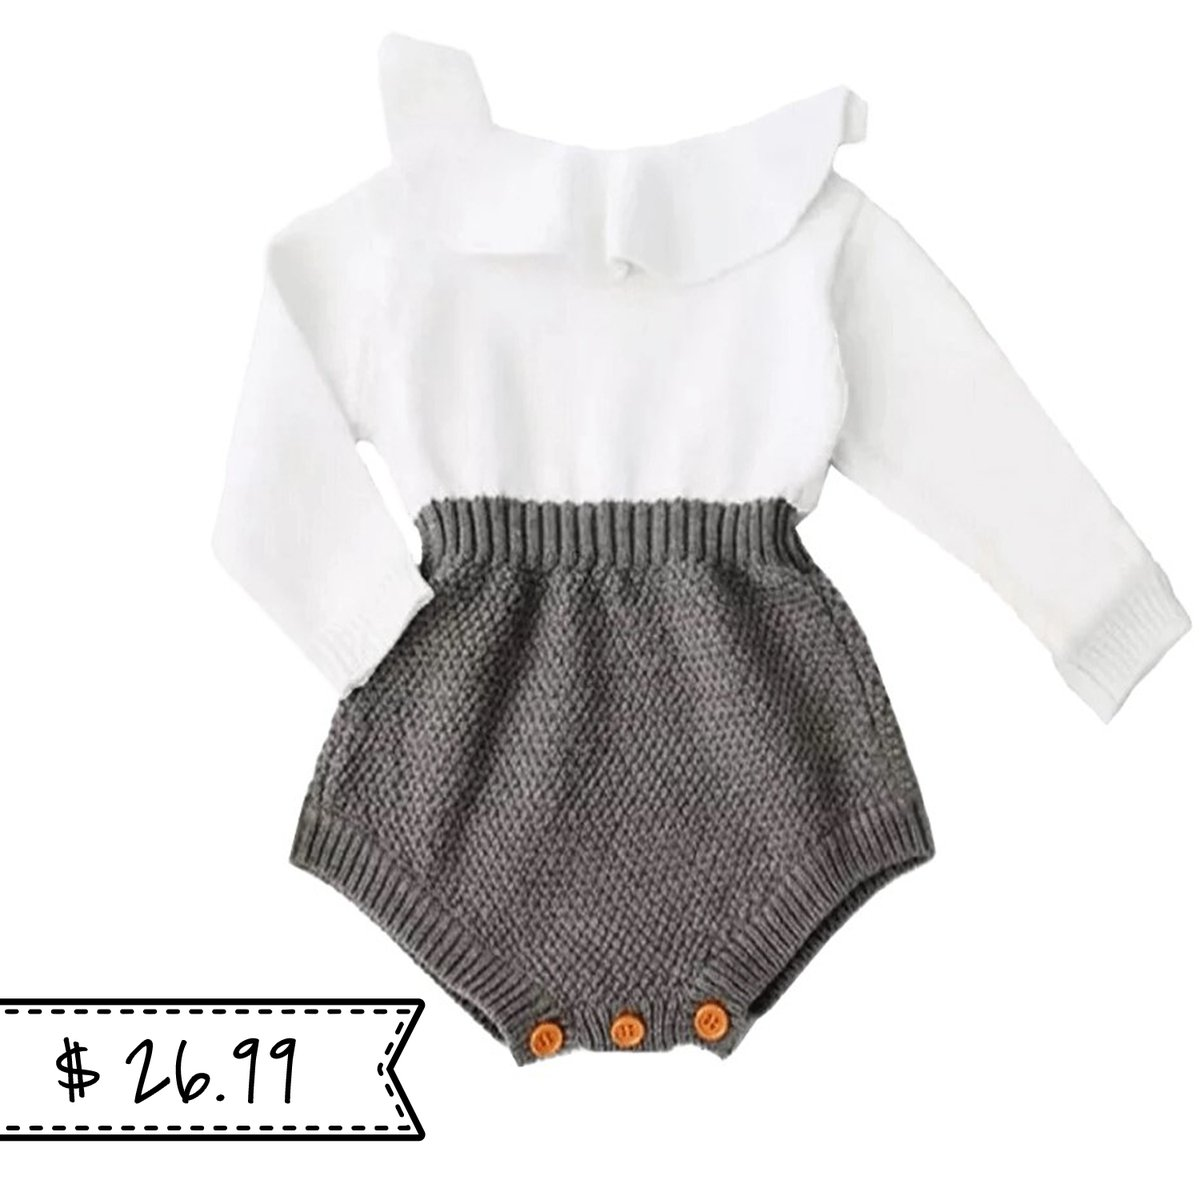 Knitted Longsleeves Playsuit  starting at $26.99 Shop Now https://shortlink.store/_AEQPLArq  #petitebello19 #babystyleguide #babygirl #babygirlclothes #babygirlfashion #trendybaby #trendybabyclothes #babyfashion #lifeofkids #childrenfashion #childrenstyle #kidstyle #kidsfashionpic.twitter.com/vOy2glKpcE